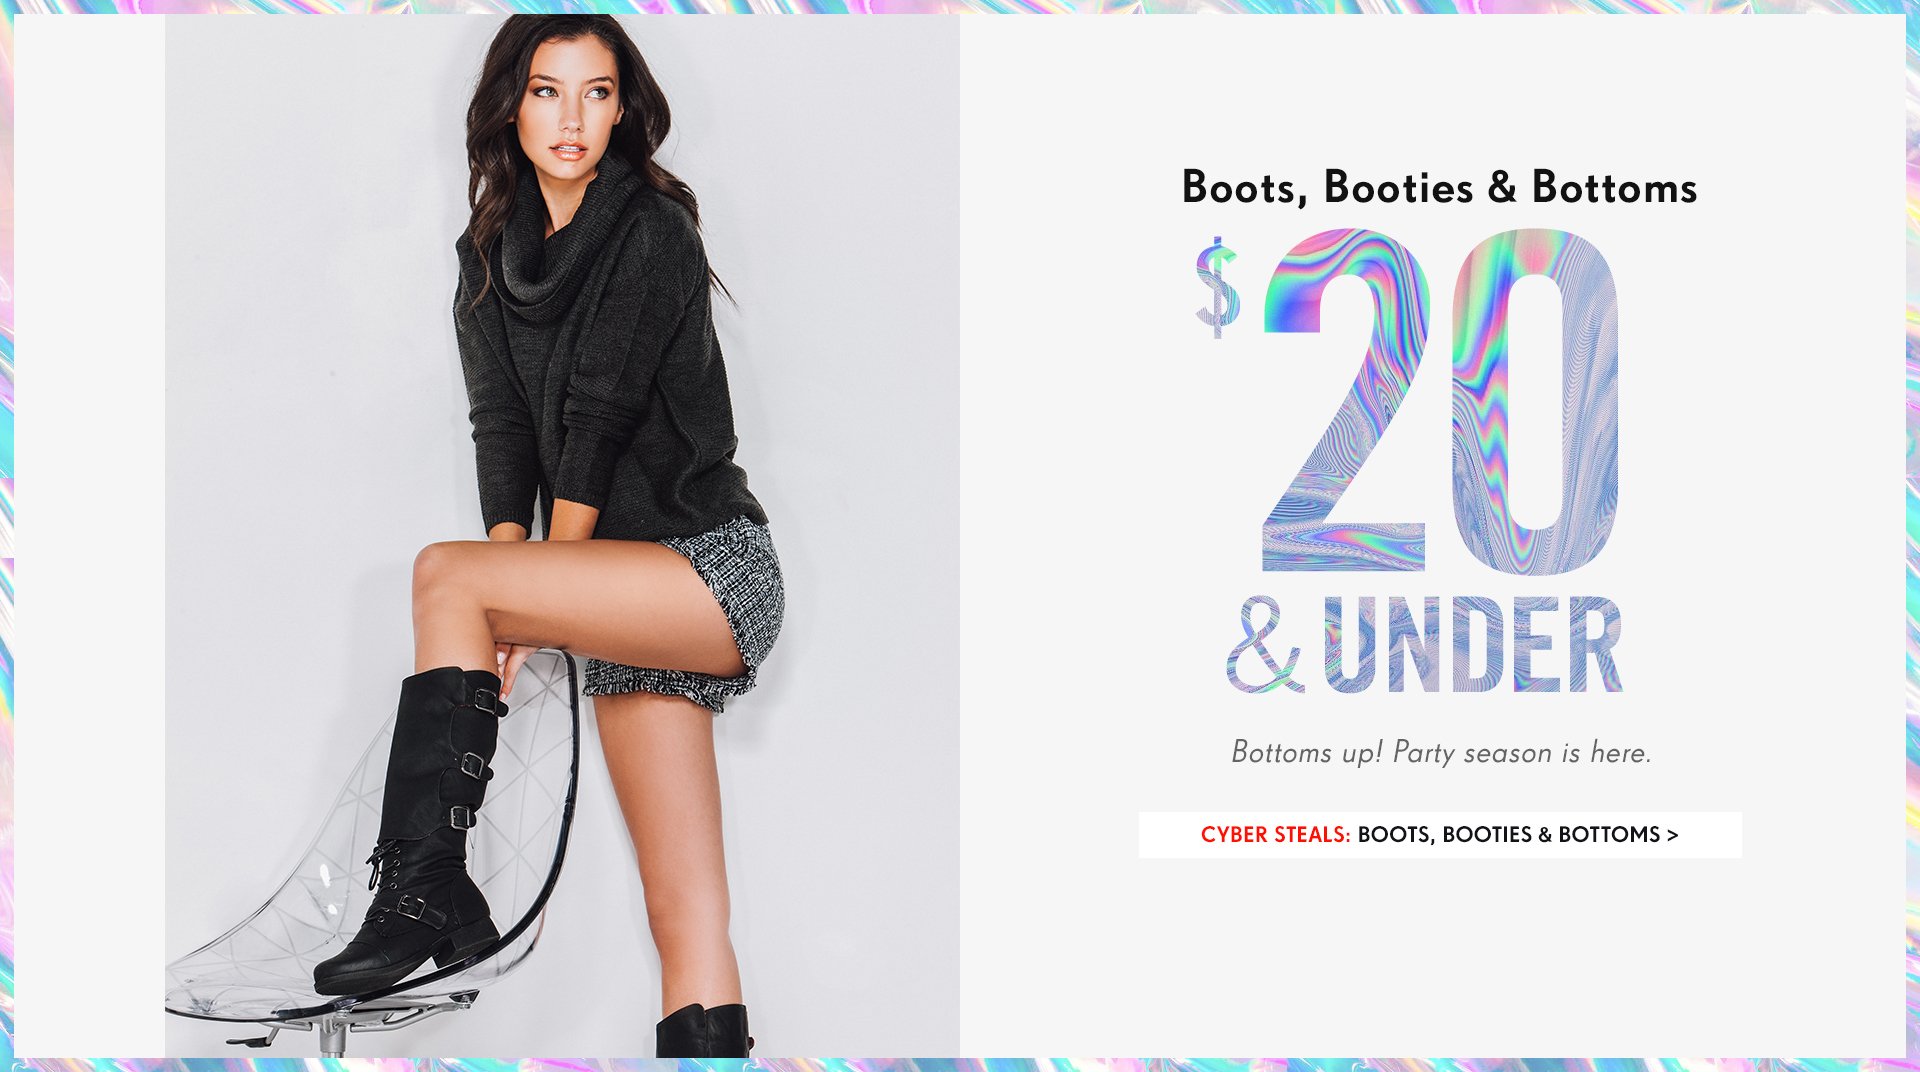 Shop Boots, Booties & Bottoms